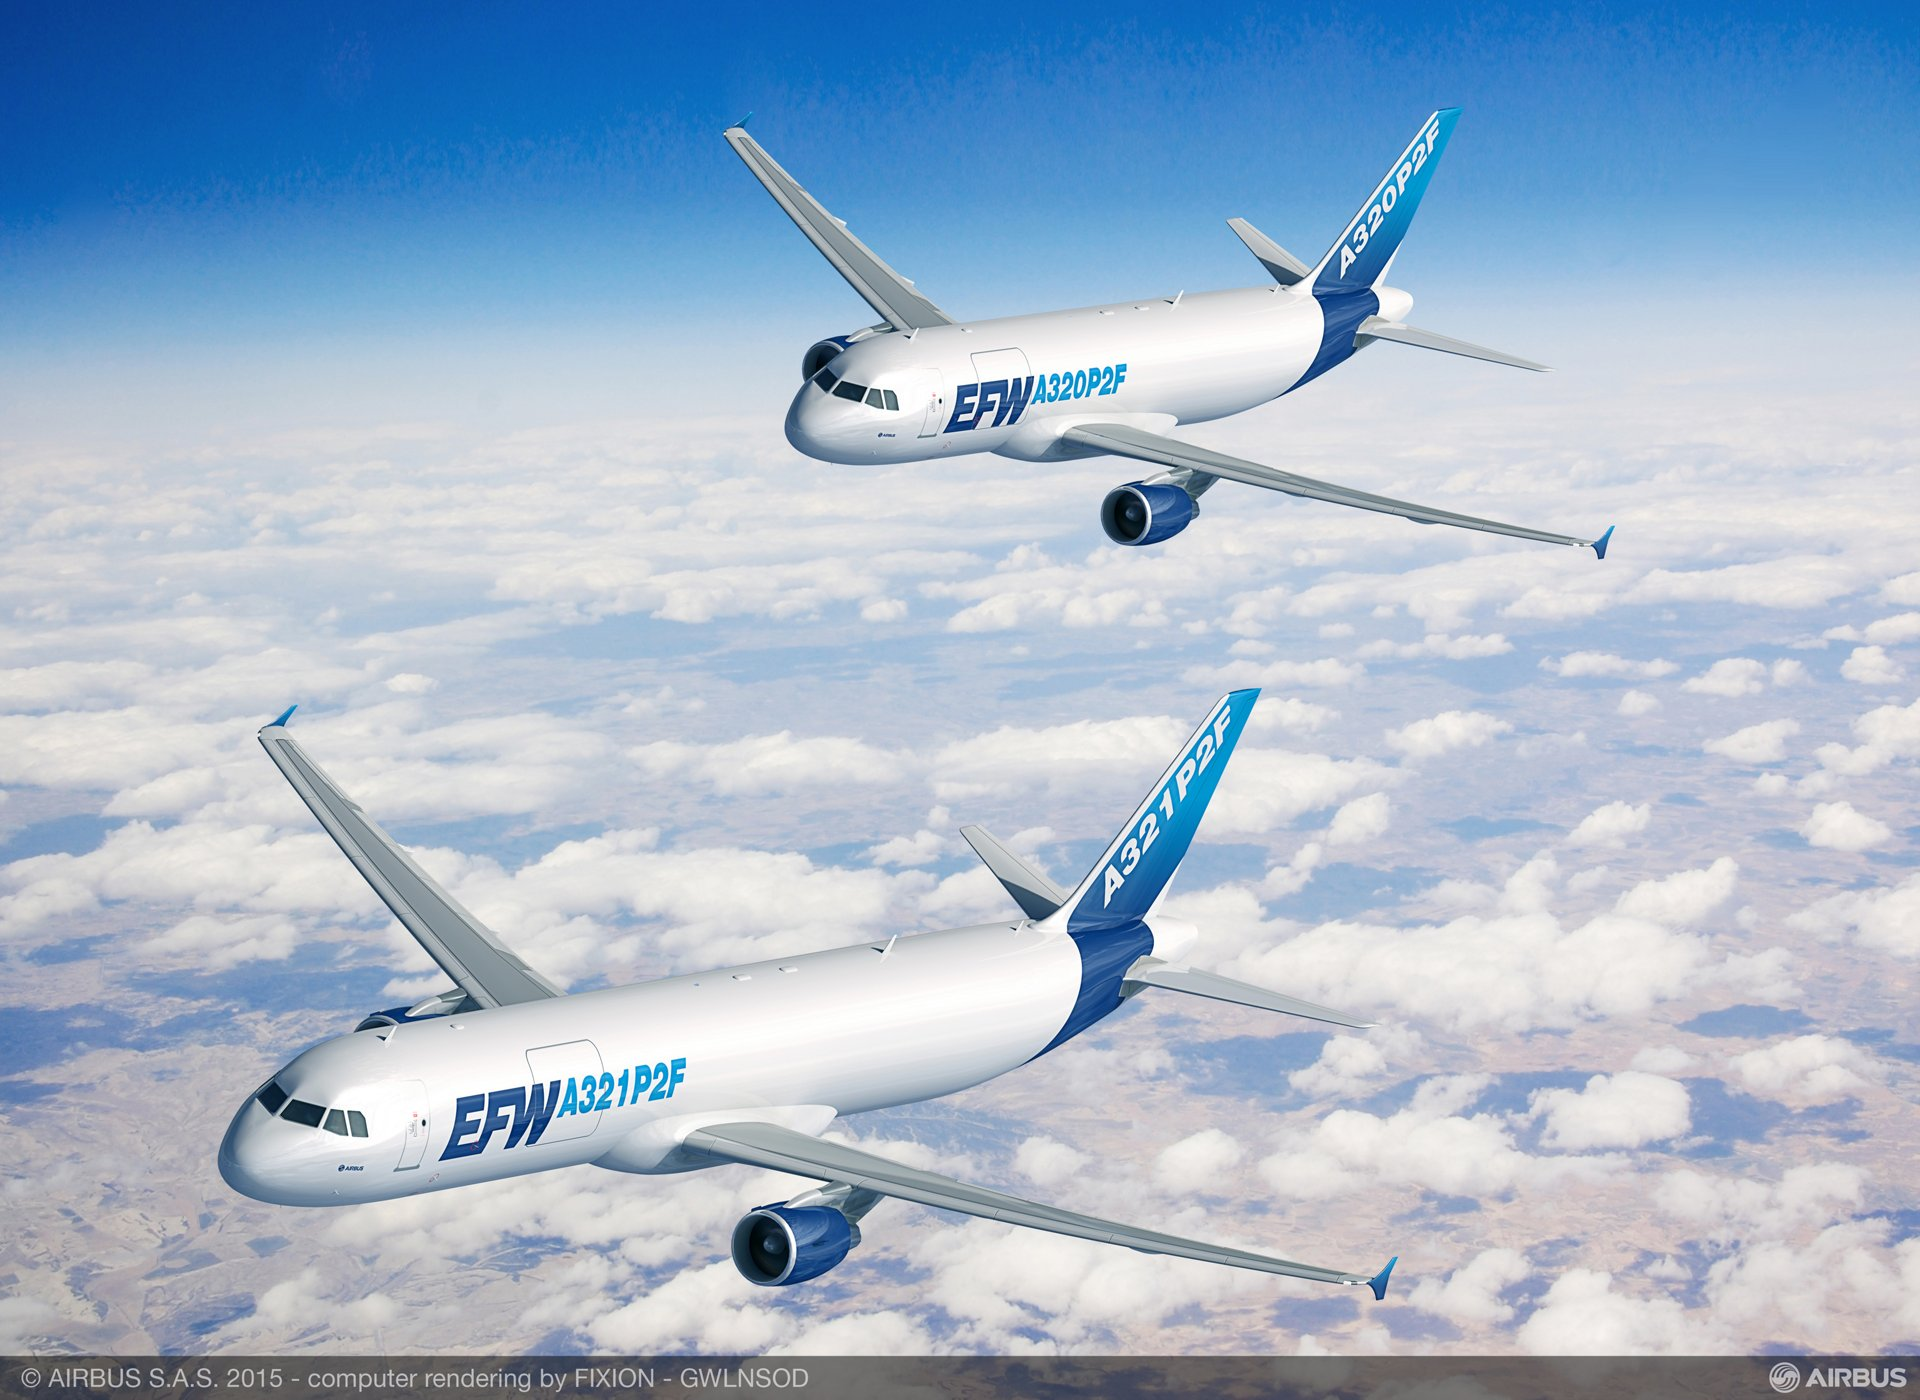 The A320P2F and A321P2F conversion programs, launched in 2015, result from a collaboration between ST Aerospace, Airbus and EFW